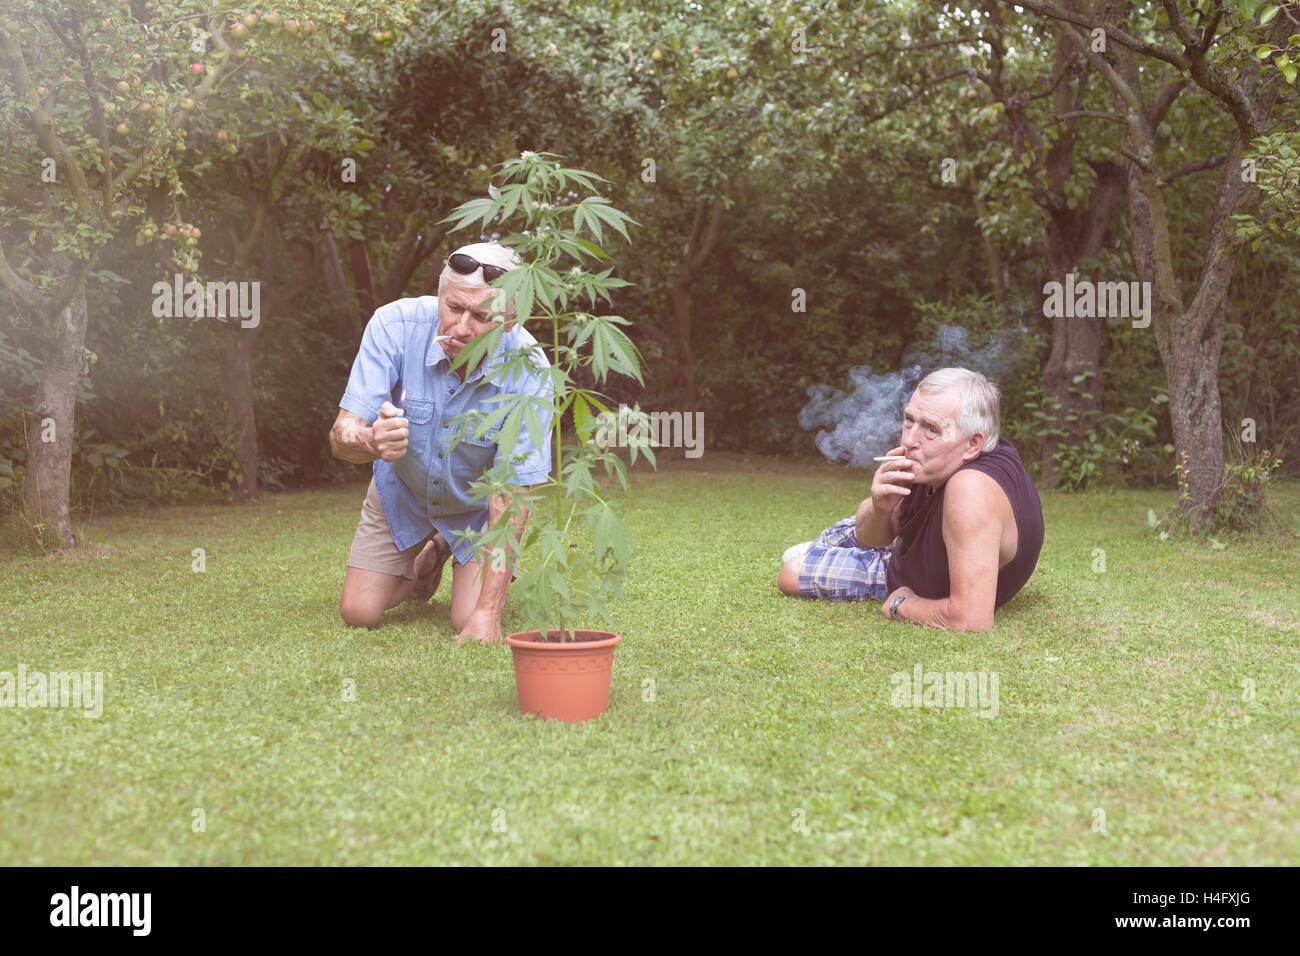 Two seniors smoking marijuana joint and relaxing next to the Cannabis plant outdoors in the garden. - Stock Image